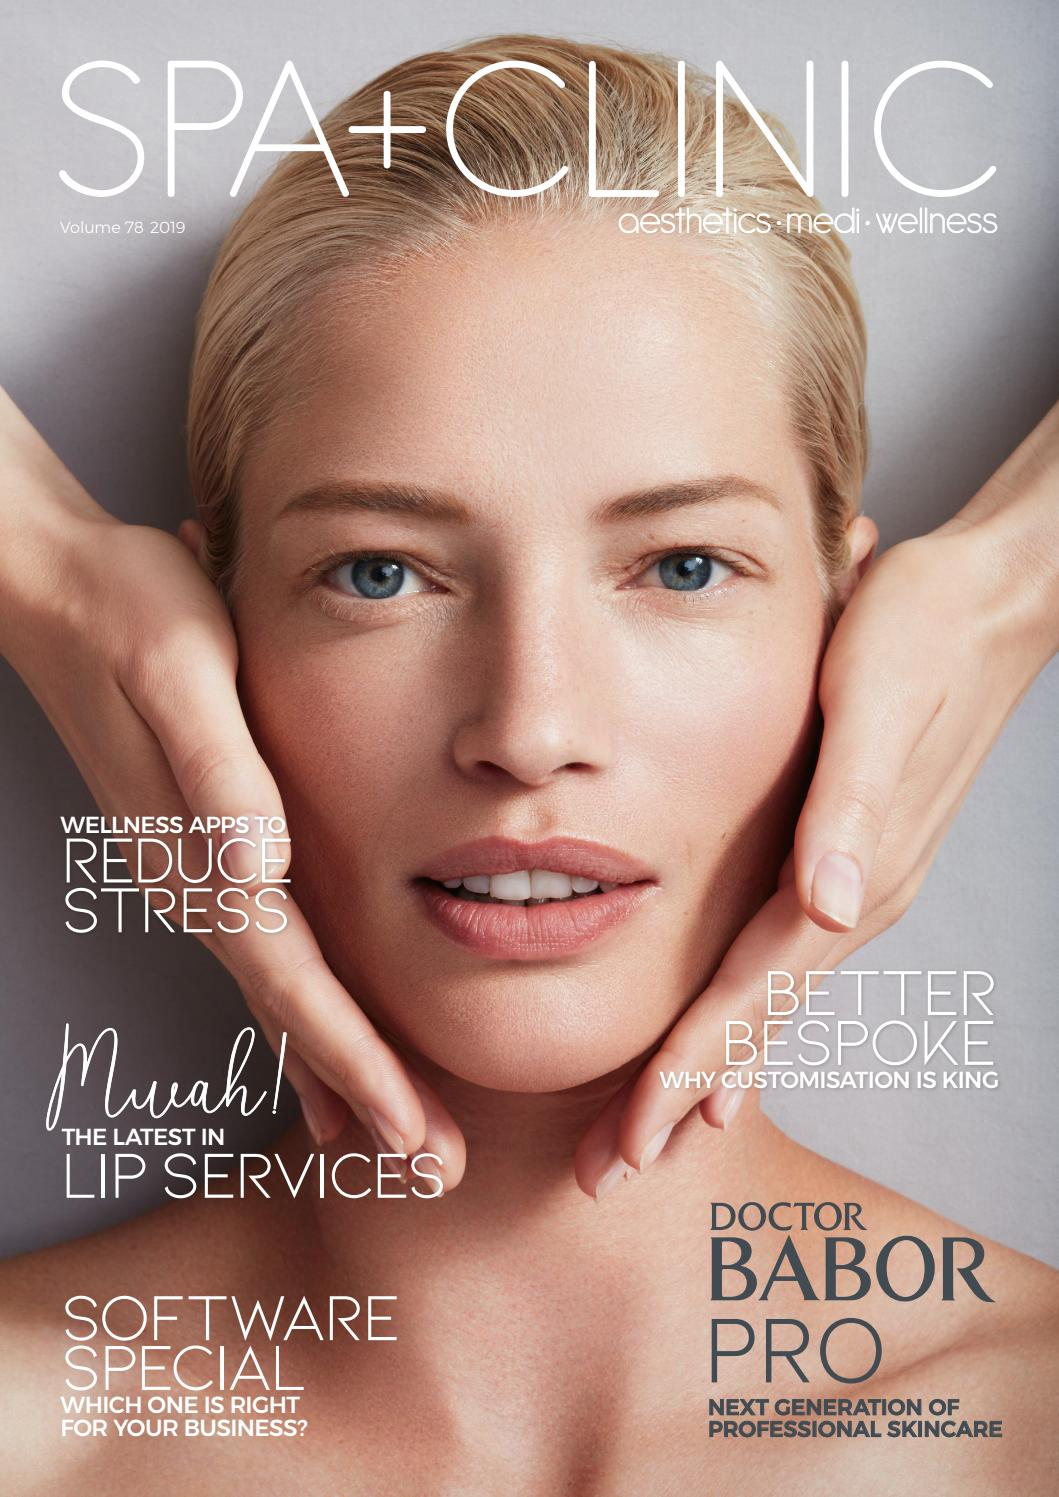 SPA & CLINIC Volume 78 July 2019 by The Intermedia Group - issuu